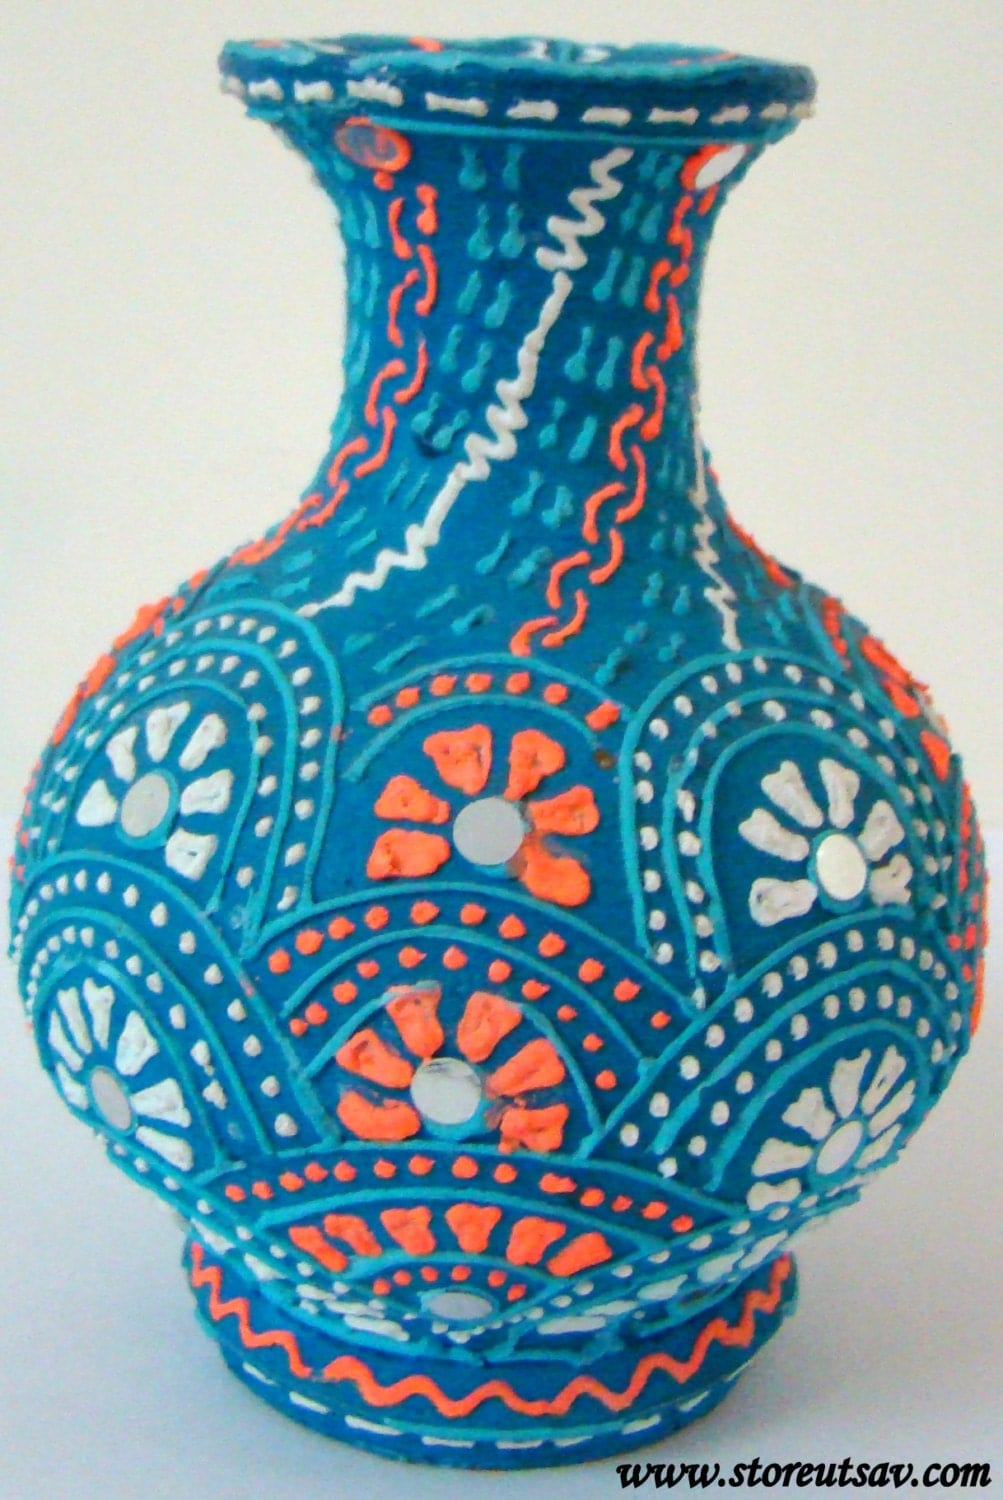 Home Decor Clay Vase Handmade Indian Handicraft Brush